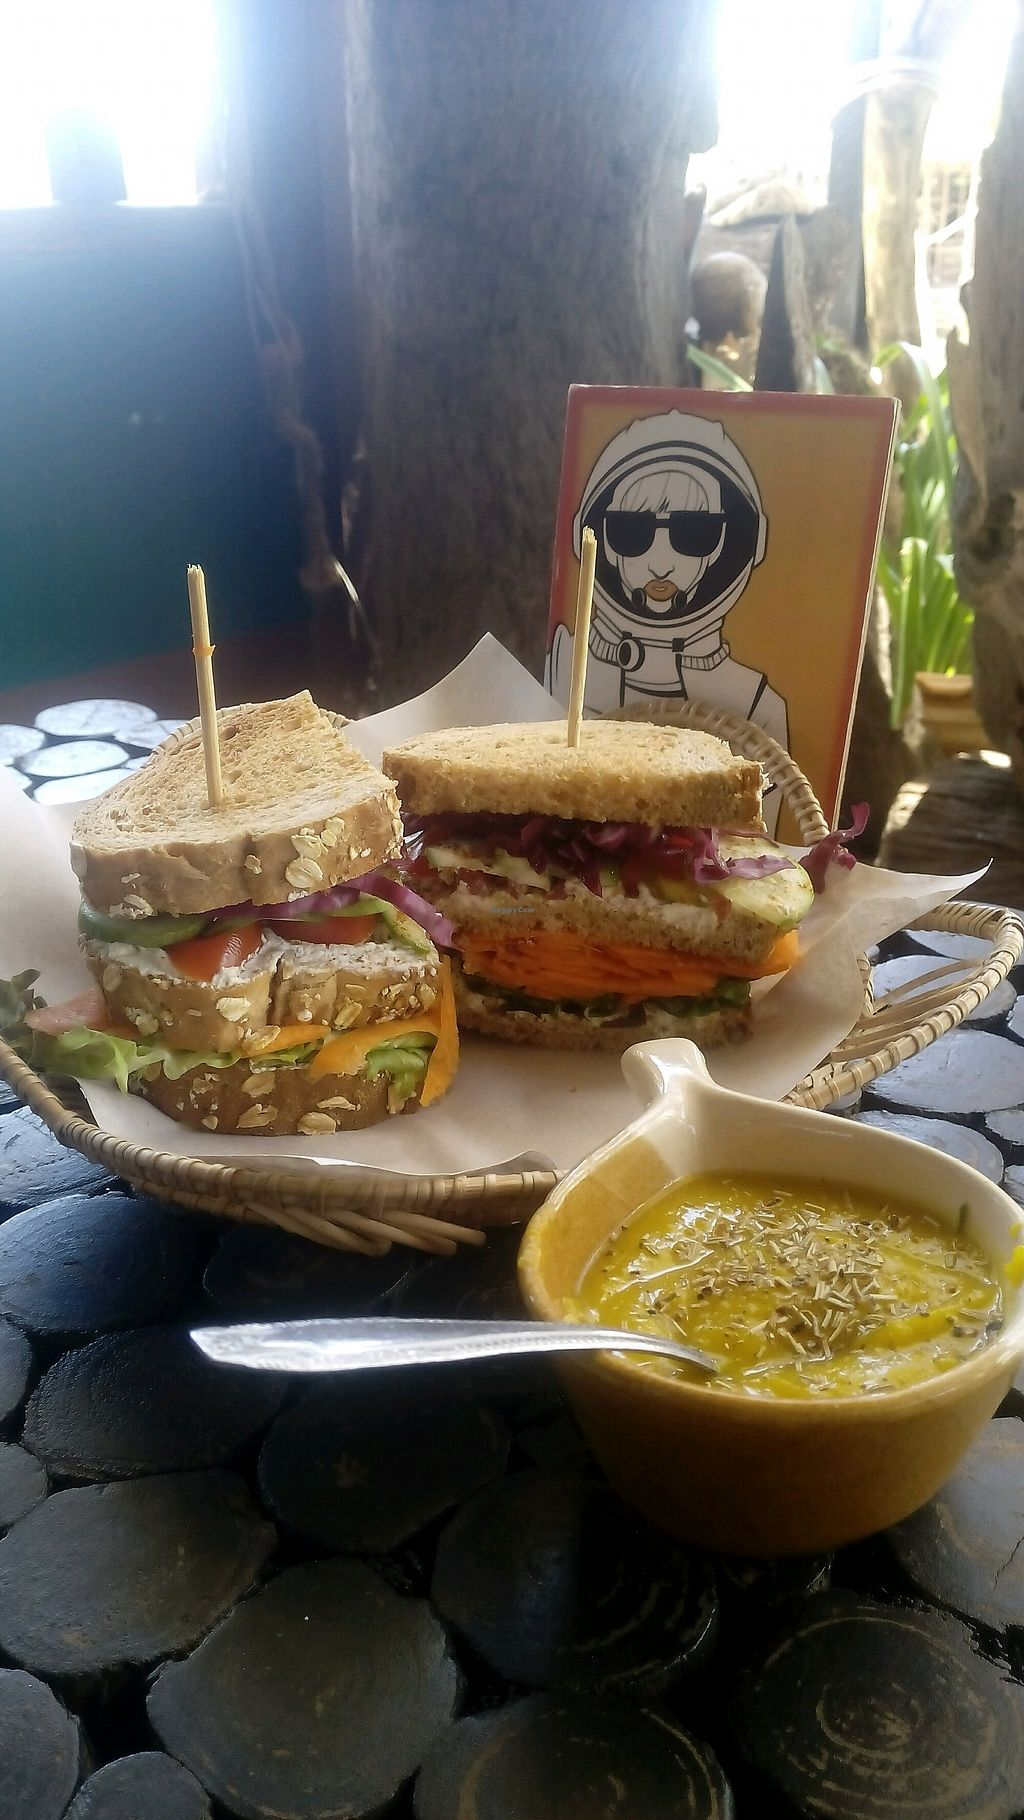 """Photo of Kaya Caffe  by <a href=""""/members/profile/FrancescaBonello"""">FrancescaBonello</a> <br/>Veggy sandwiches whit homemade cheese  <br/> September 2, 2017  - <a href='/contact/abuse/image/98208/299935'>Report</a>"""